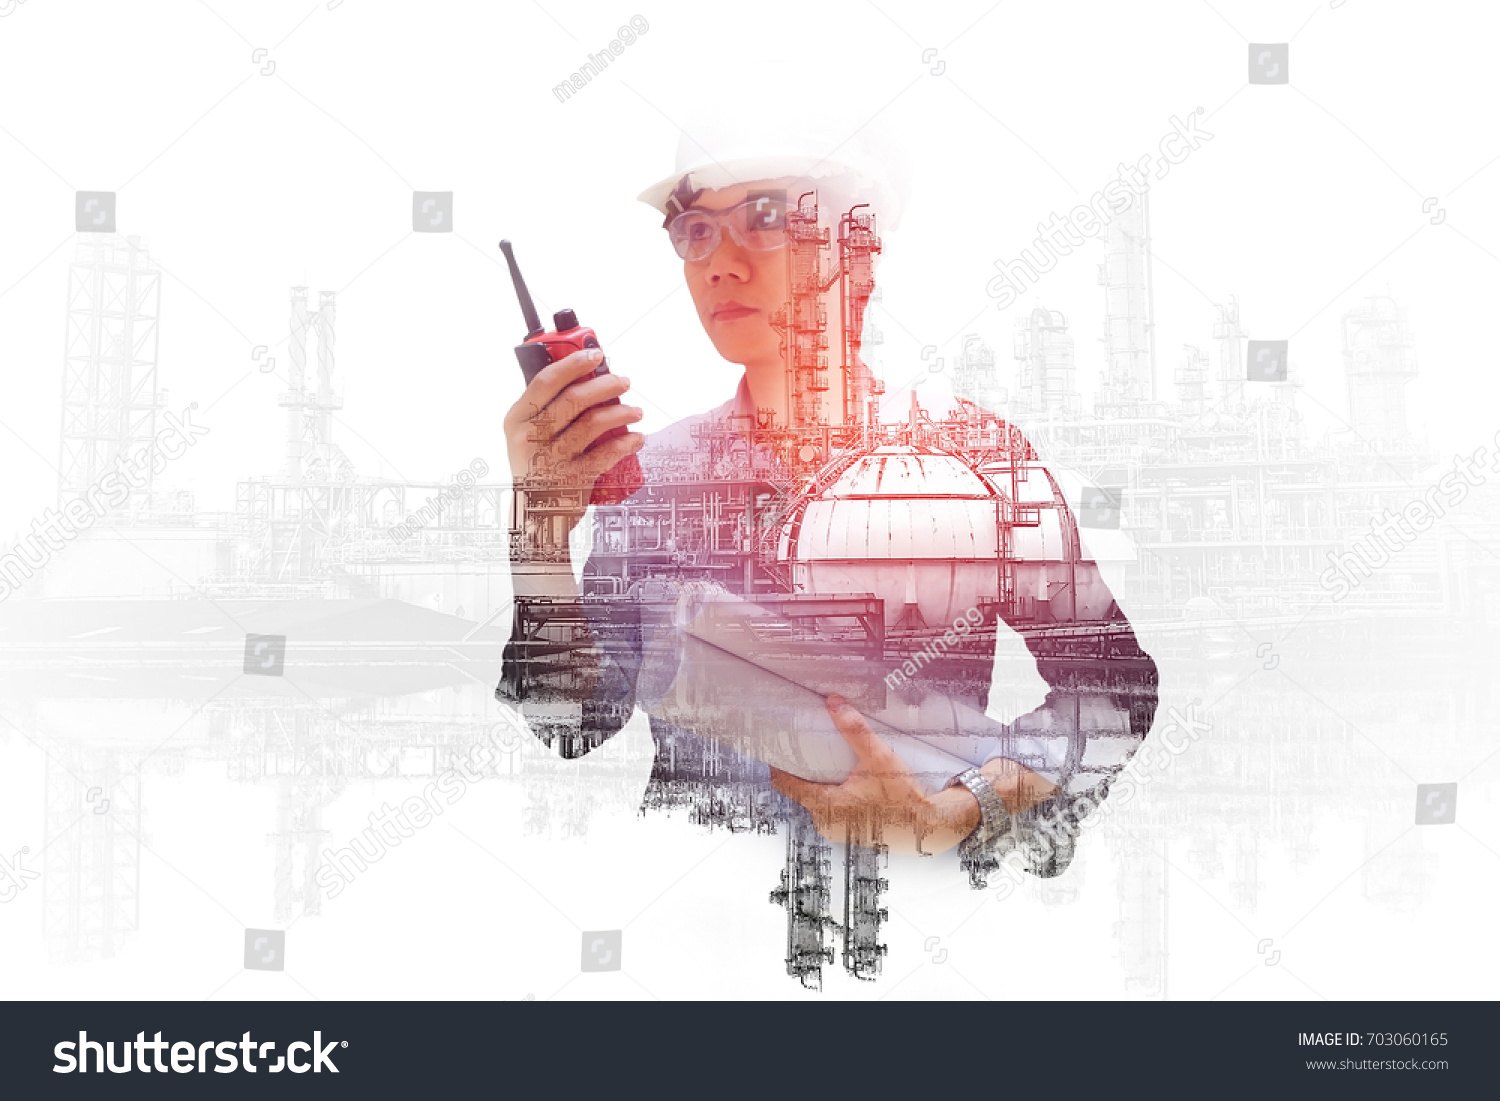 Asian engineer monitoring in oil and gas refinery plant, Double exposure  engineering hand holding portable